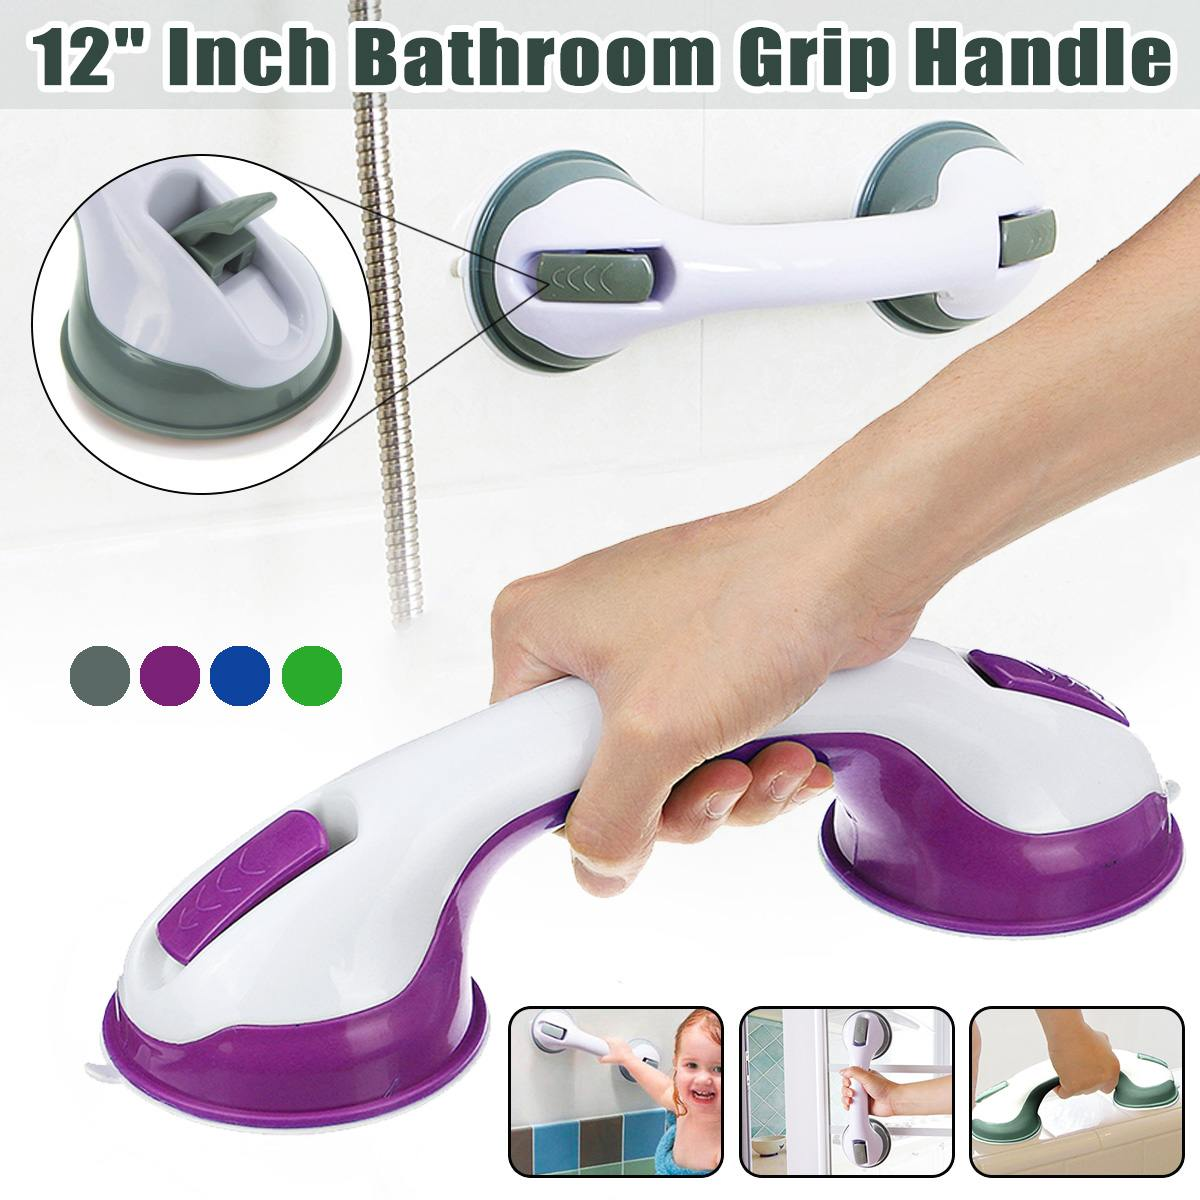 Portable Bathroom Grip Rail SPA Bath Shower Support Safety Suction Mount Handle Bar Vacuum Suction Cup Anti Slip Support